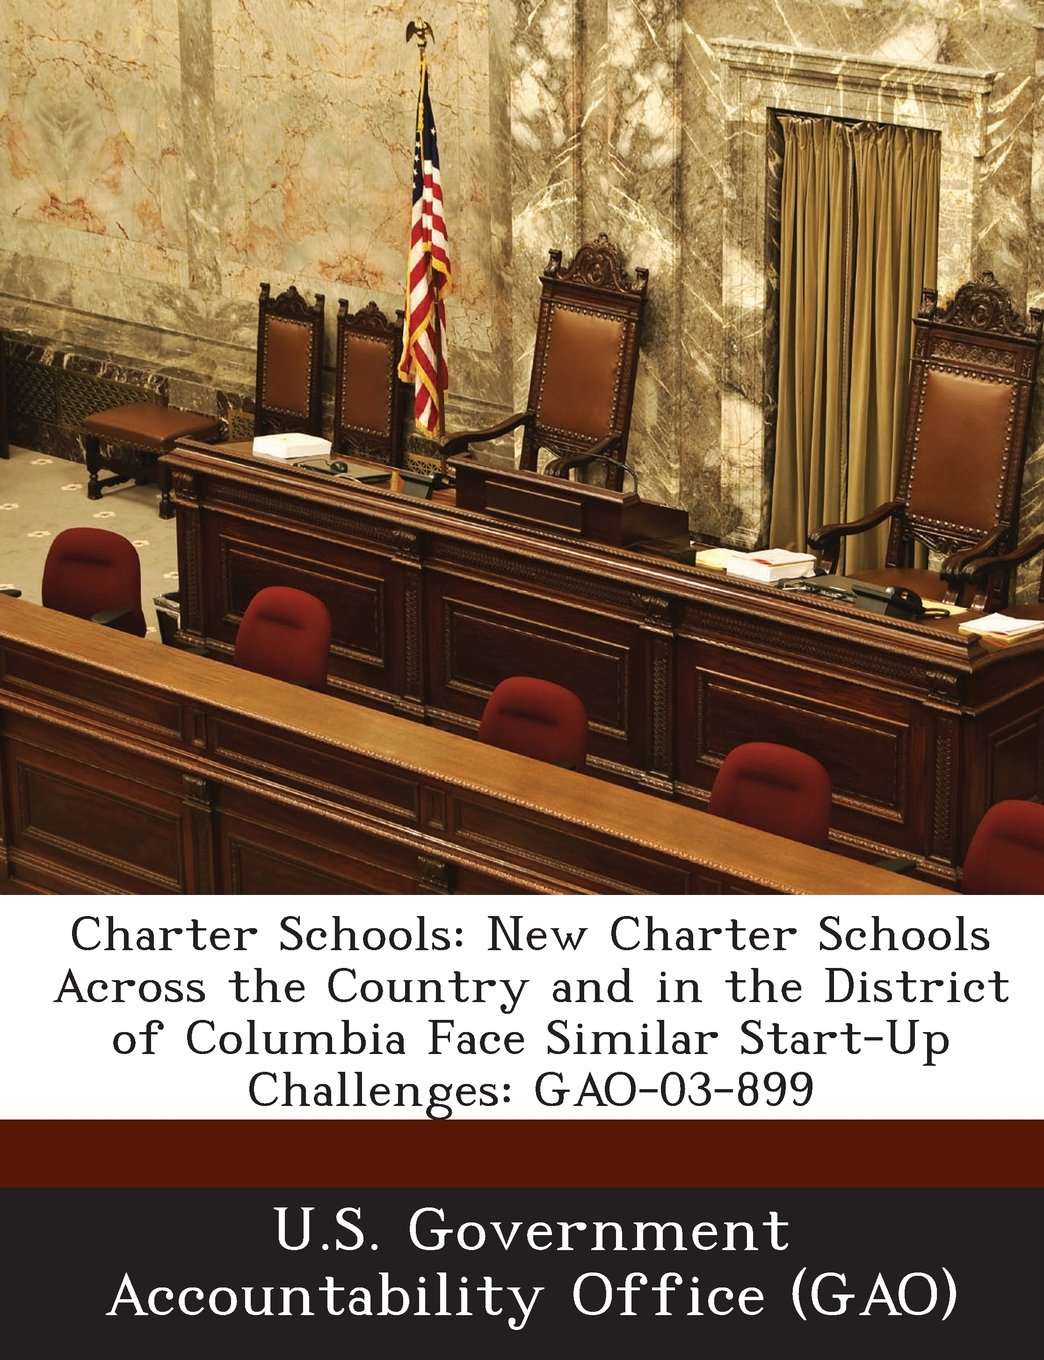 Charter Schools: New Charter Schools Across the Country and in the District of Columbia Face Similar Start-Up Challenges: GAO-03-899 pdf epub